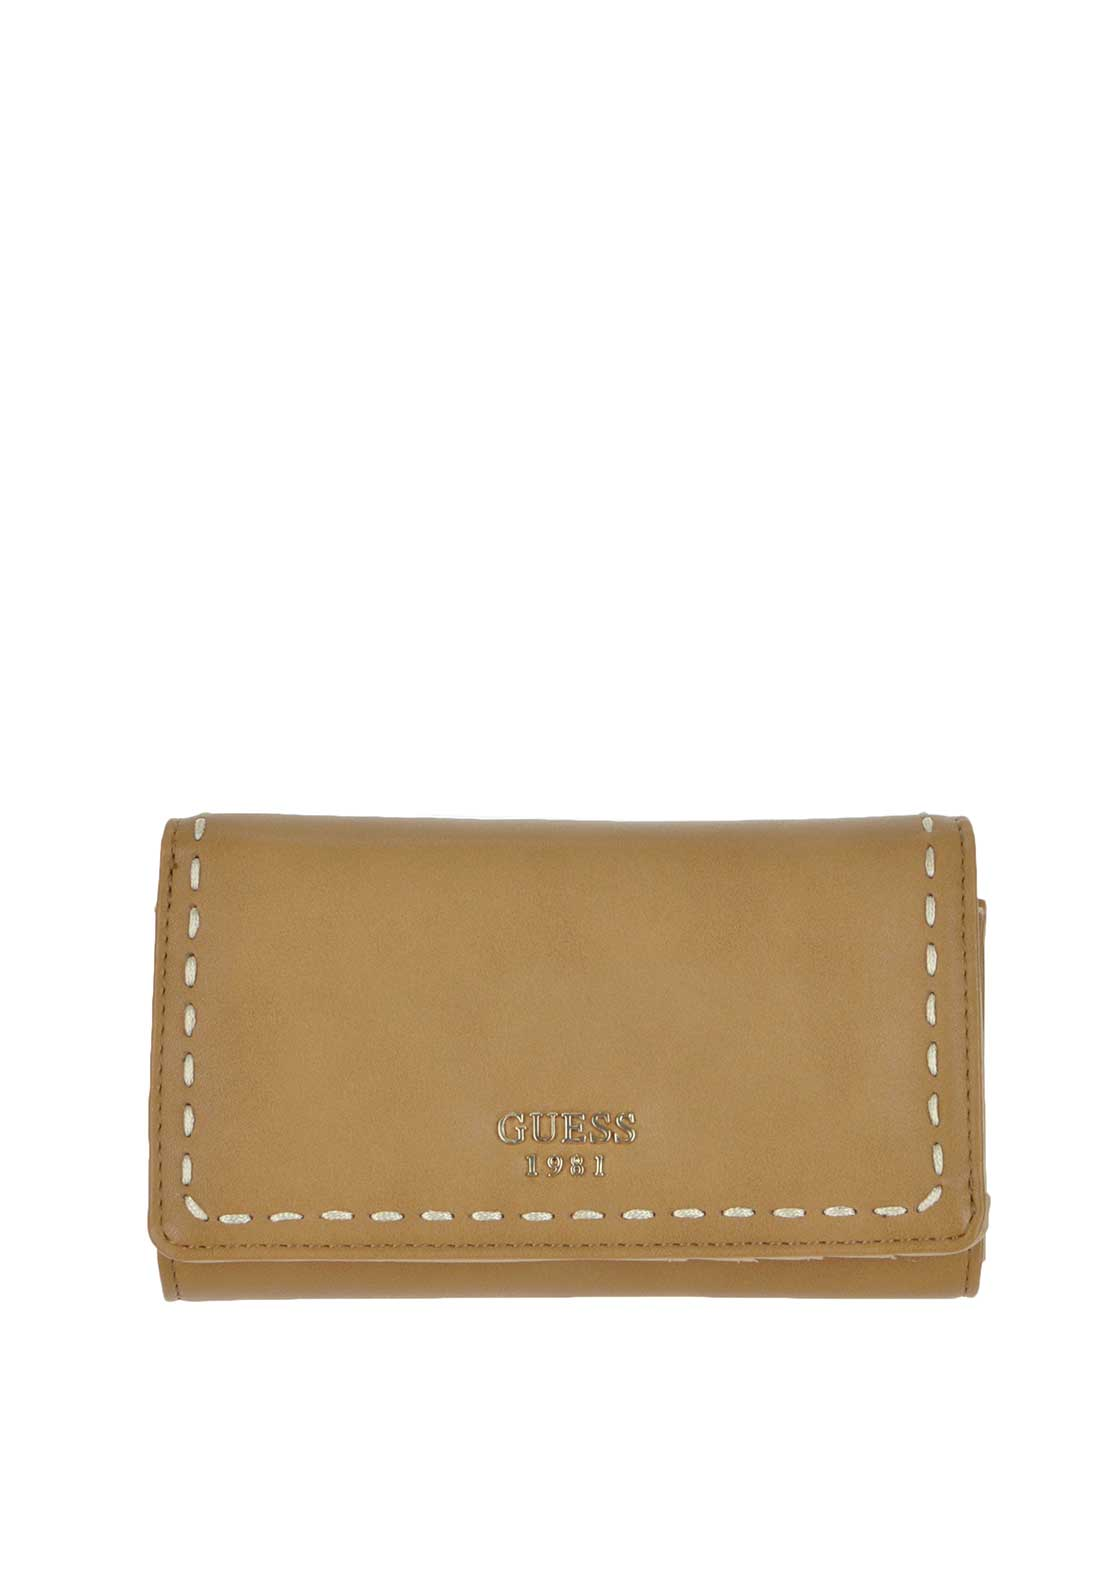 Guess Juliana Flap Wallet, Brown